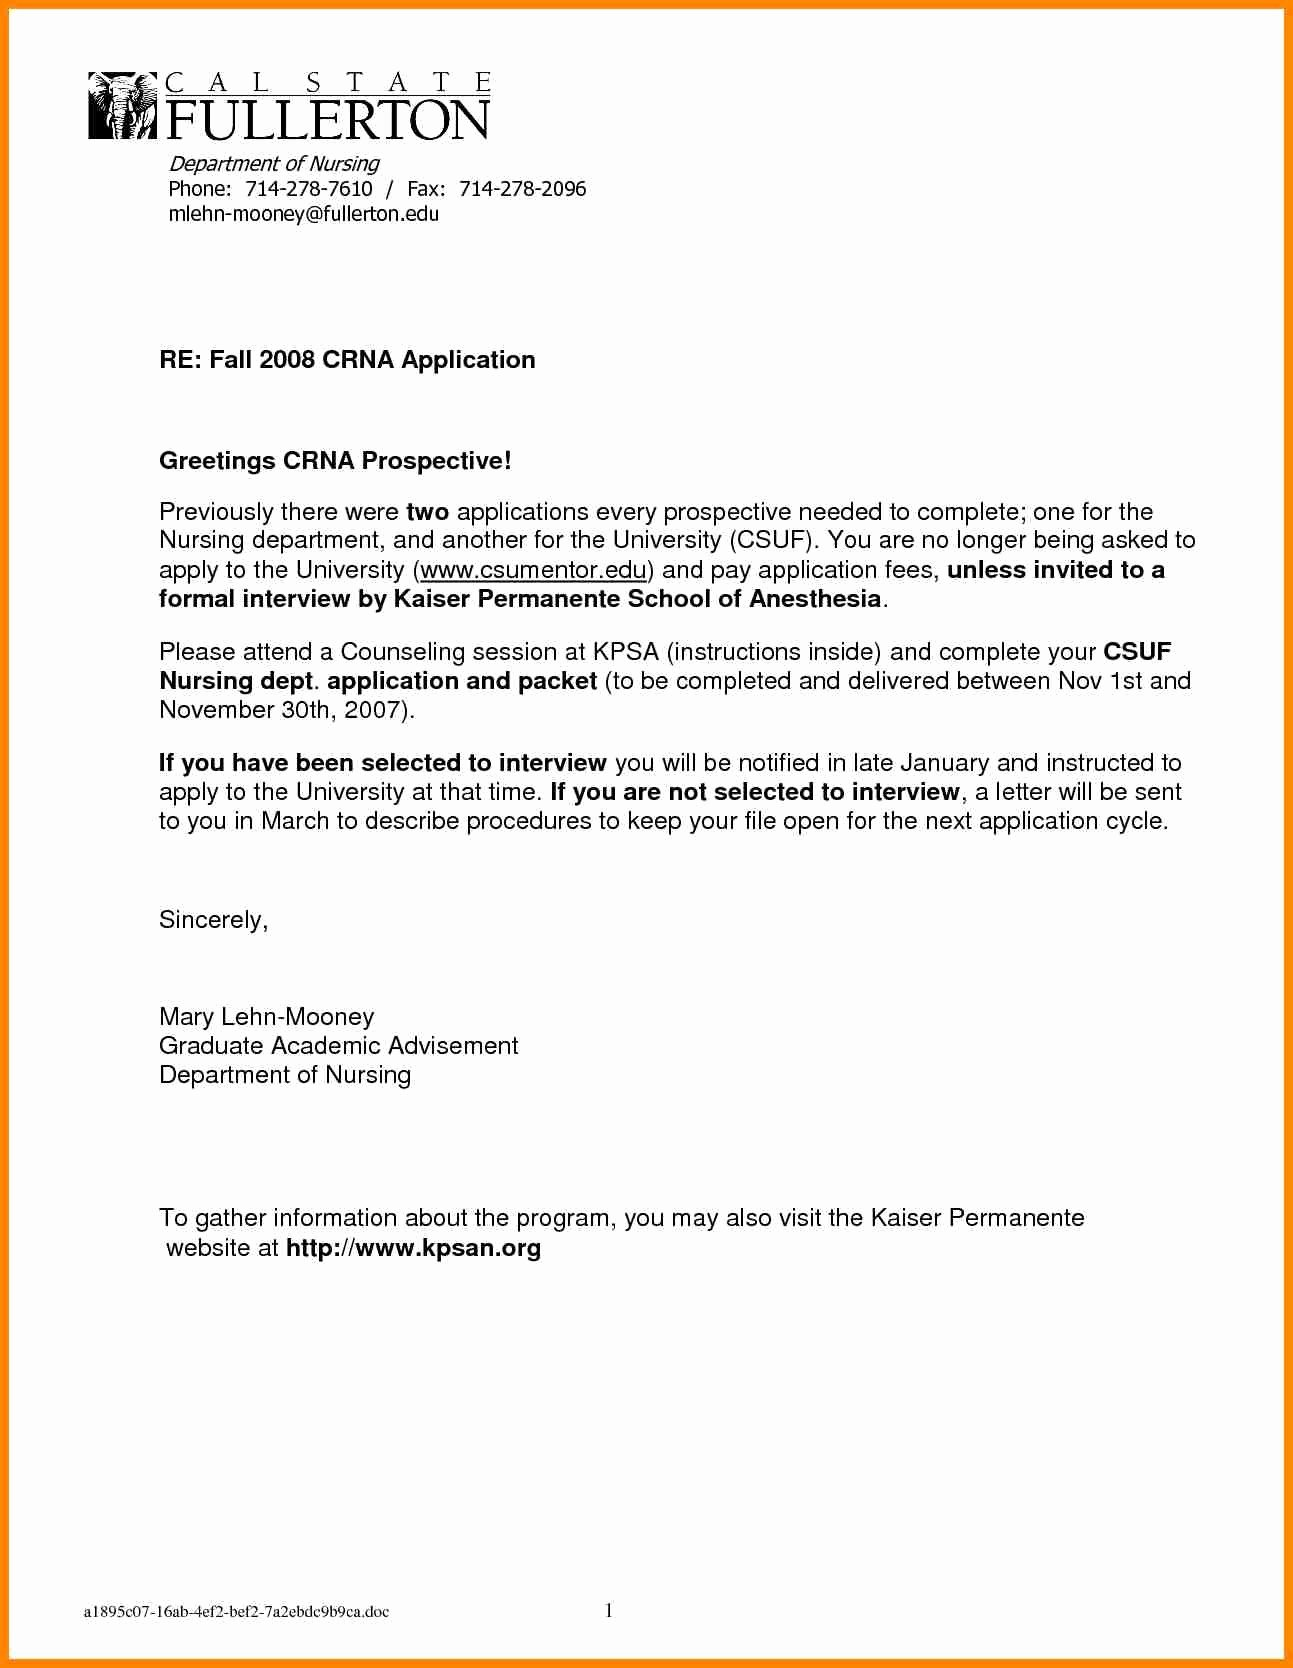 Employment Letter Of Recommendation Template Beautiful Employment Letter Of Re Mendation Template Pics